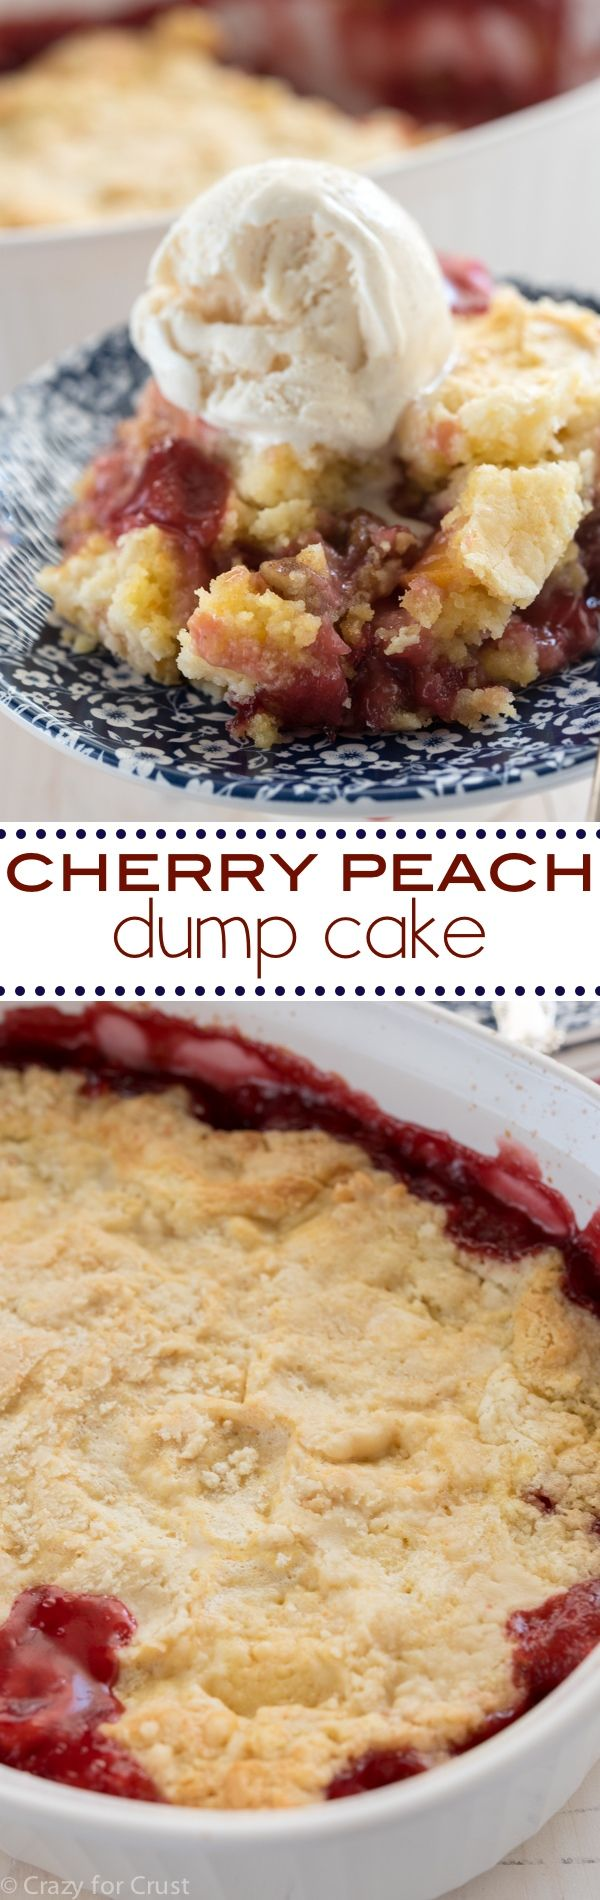 Cherry Peach Dump Cake | Recipe | Helpful hints, Cakes and ...